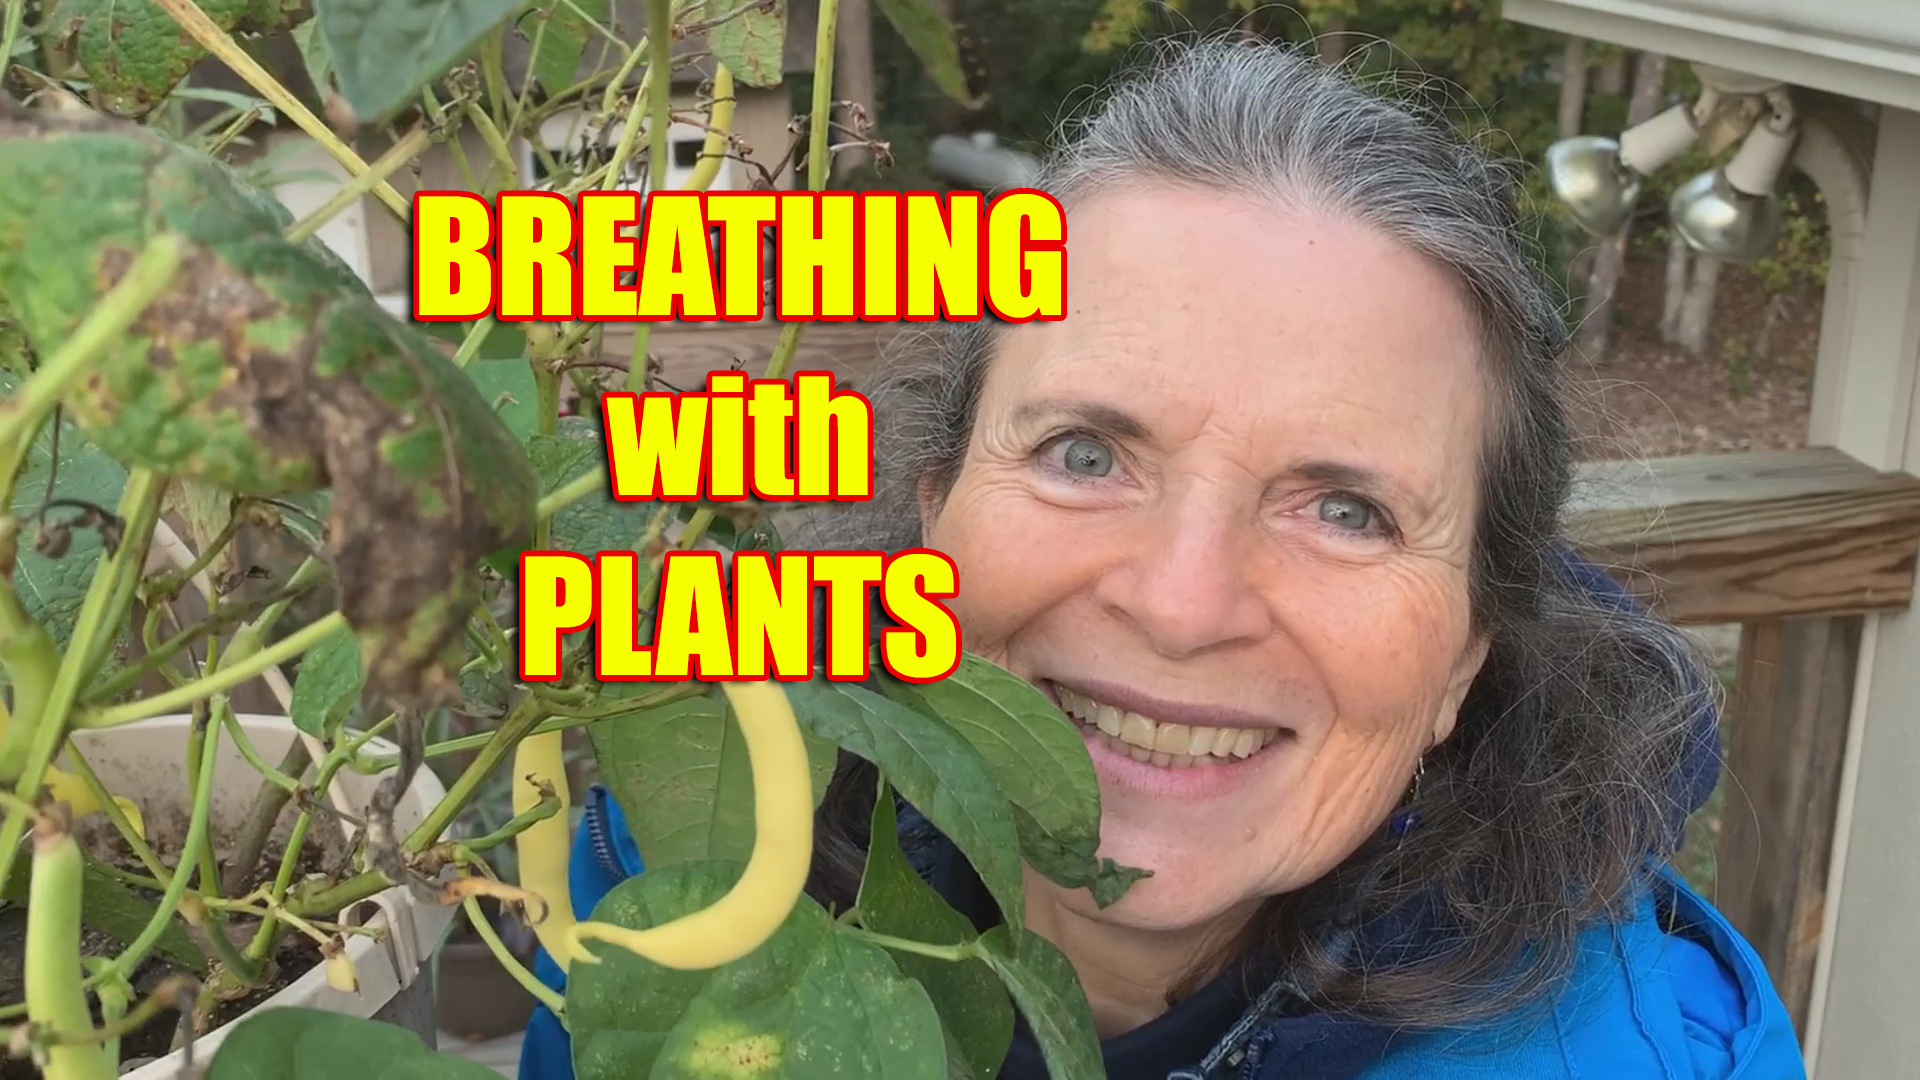 We breathe in what green plants breathe out